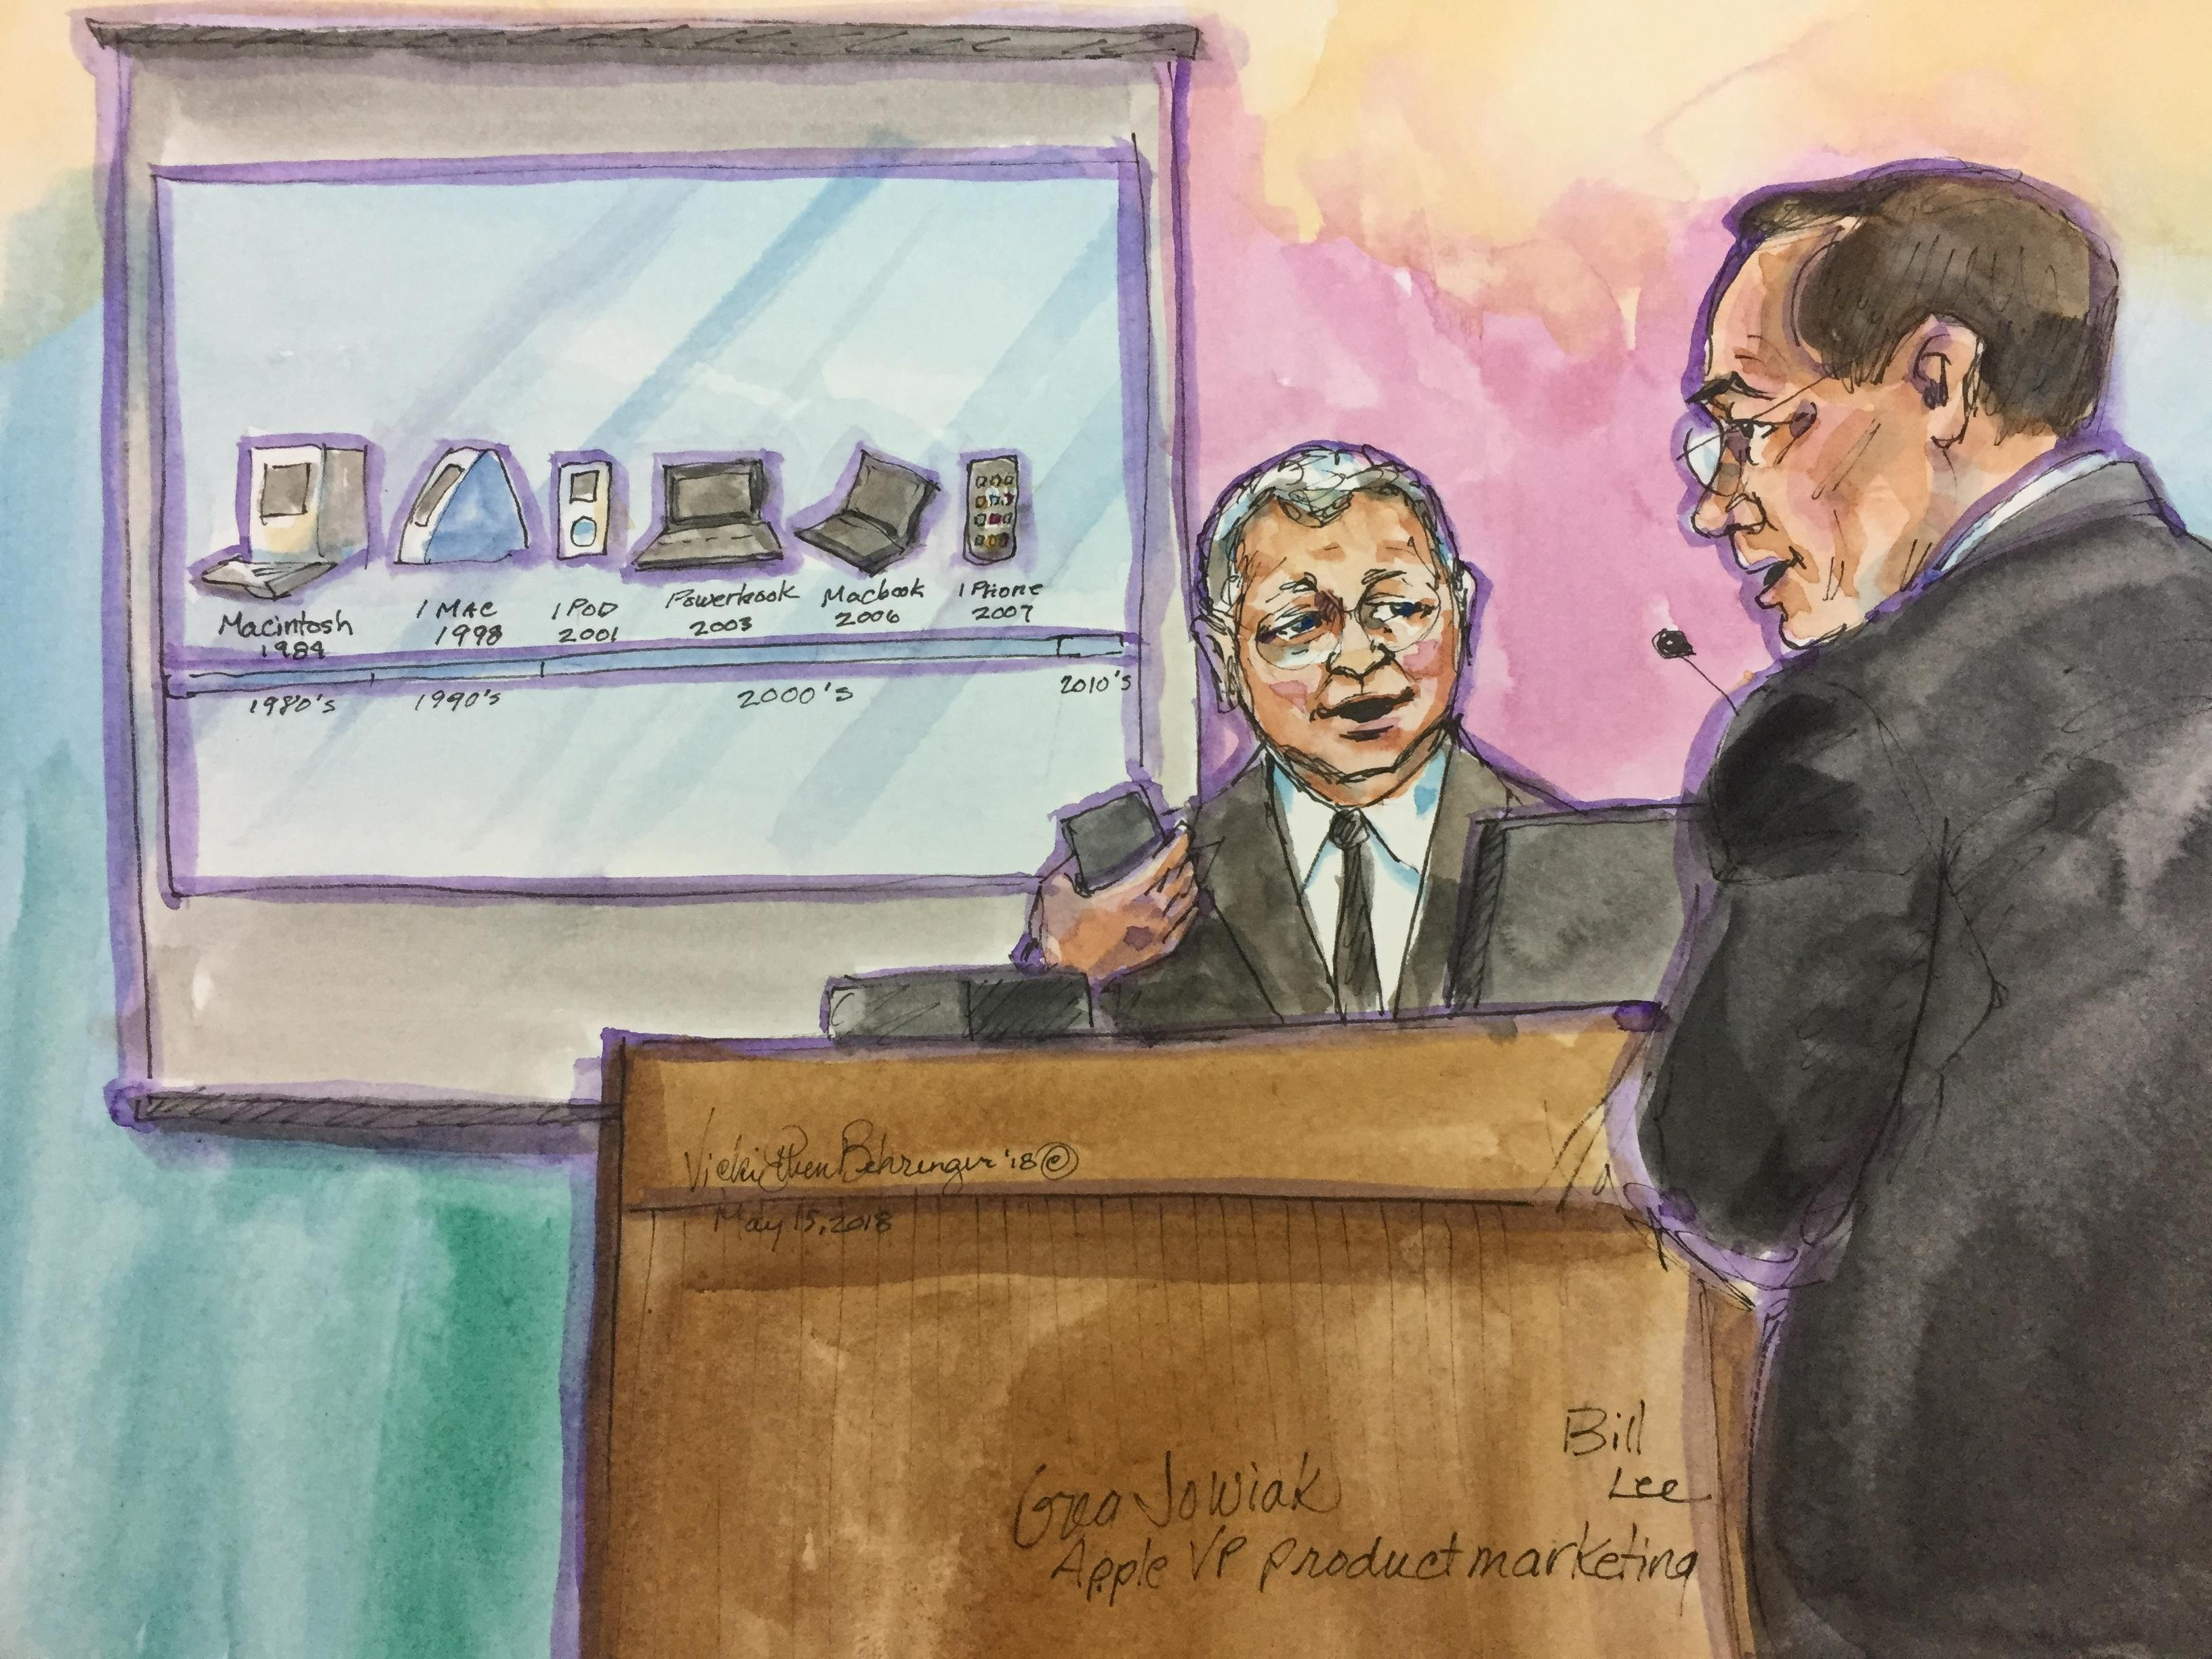 At a patent infringement damages trial, Greg Joswiak, Apple's vice president of product marketing, answers questions from Apple attorney Bill Lee about Apple's history of product design.